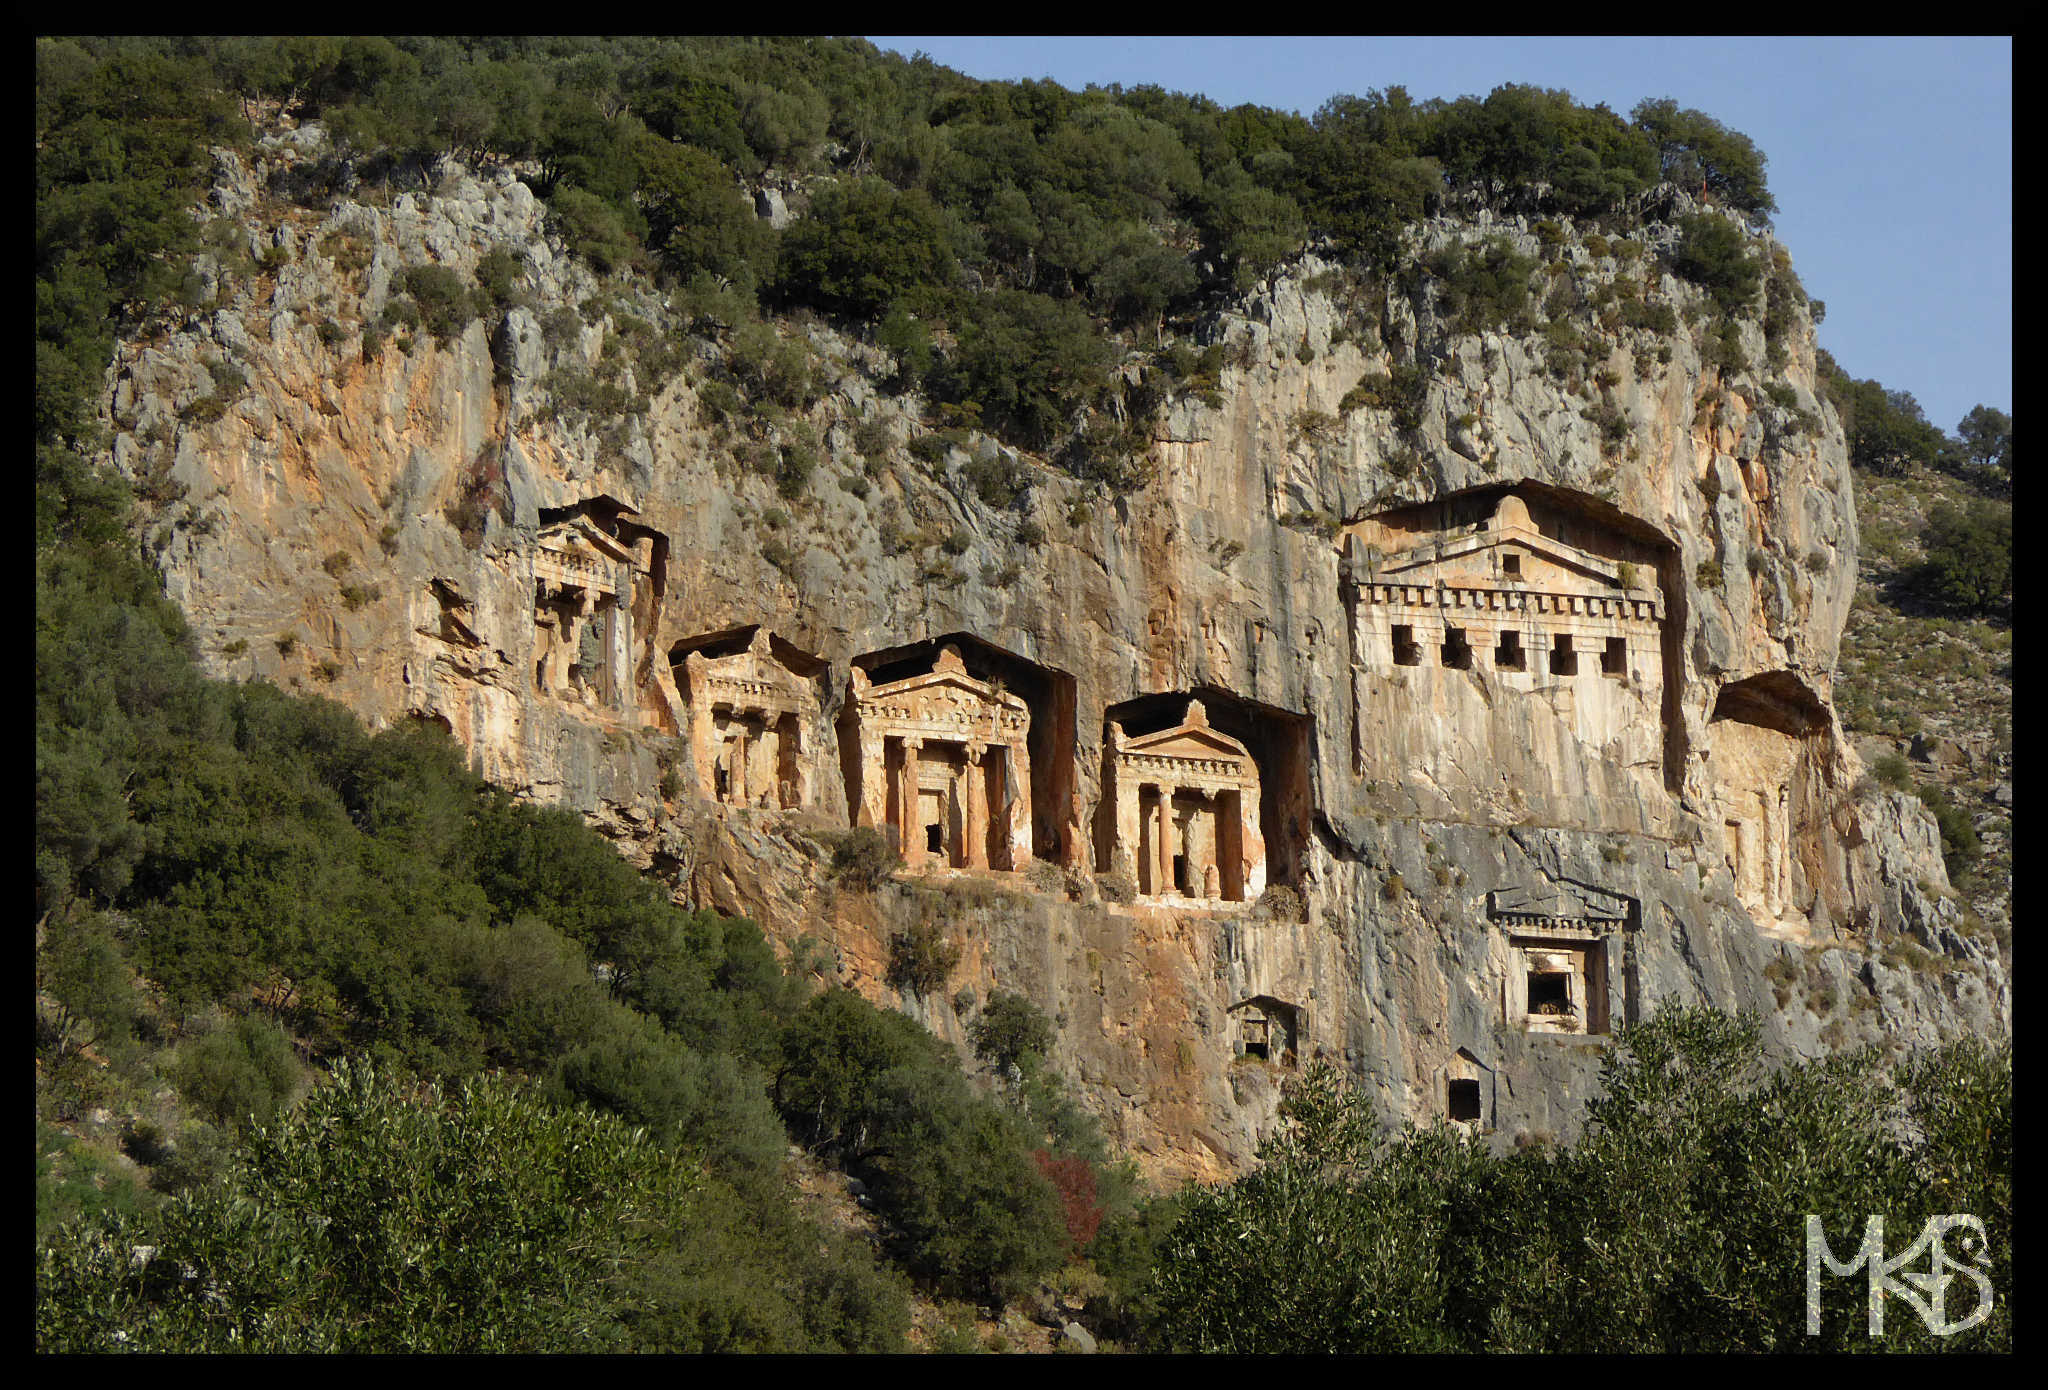 Tombs in Kaunos, Turkey